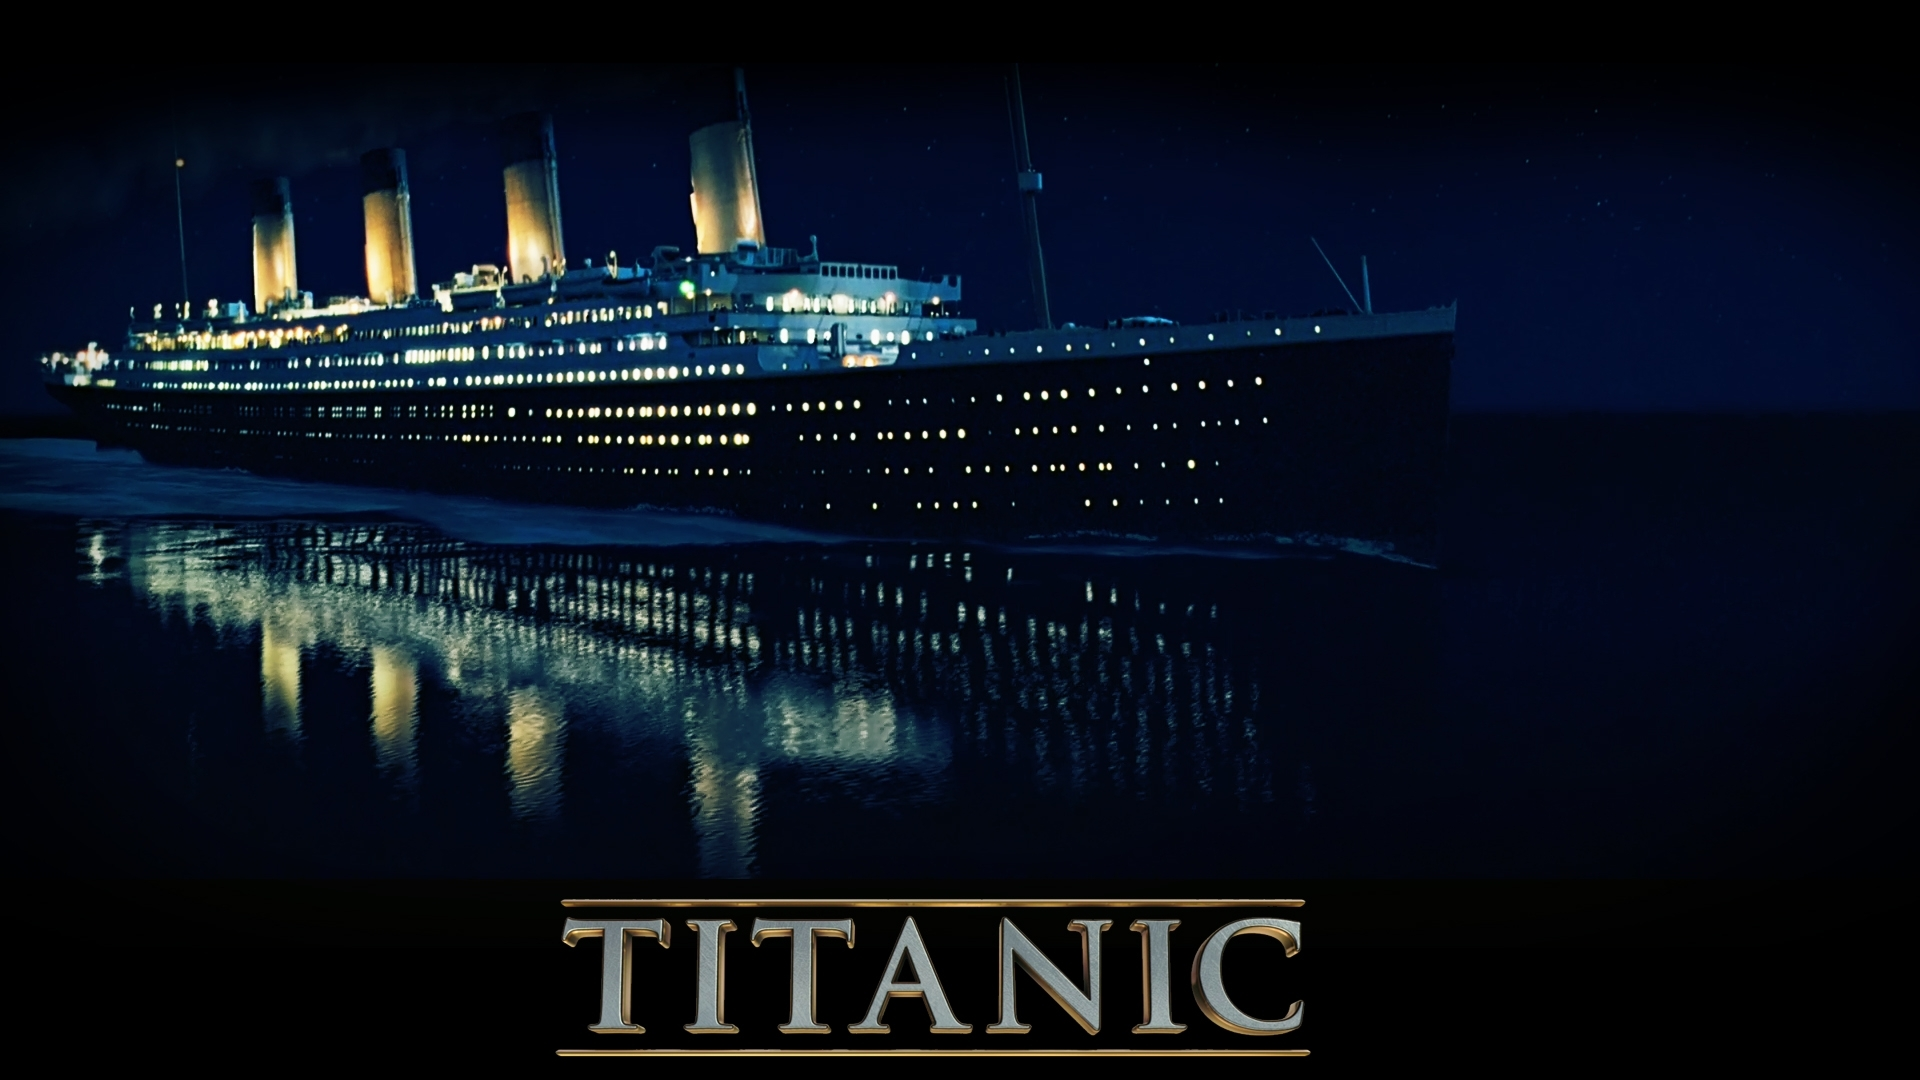 Titanic Ship 2207.35 Kb